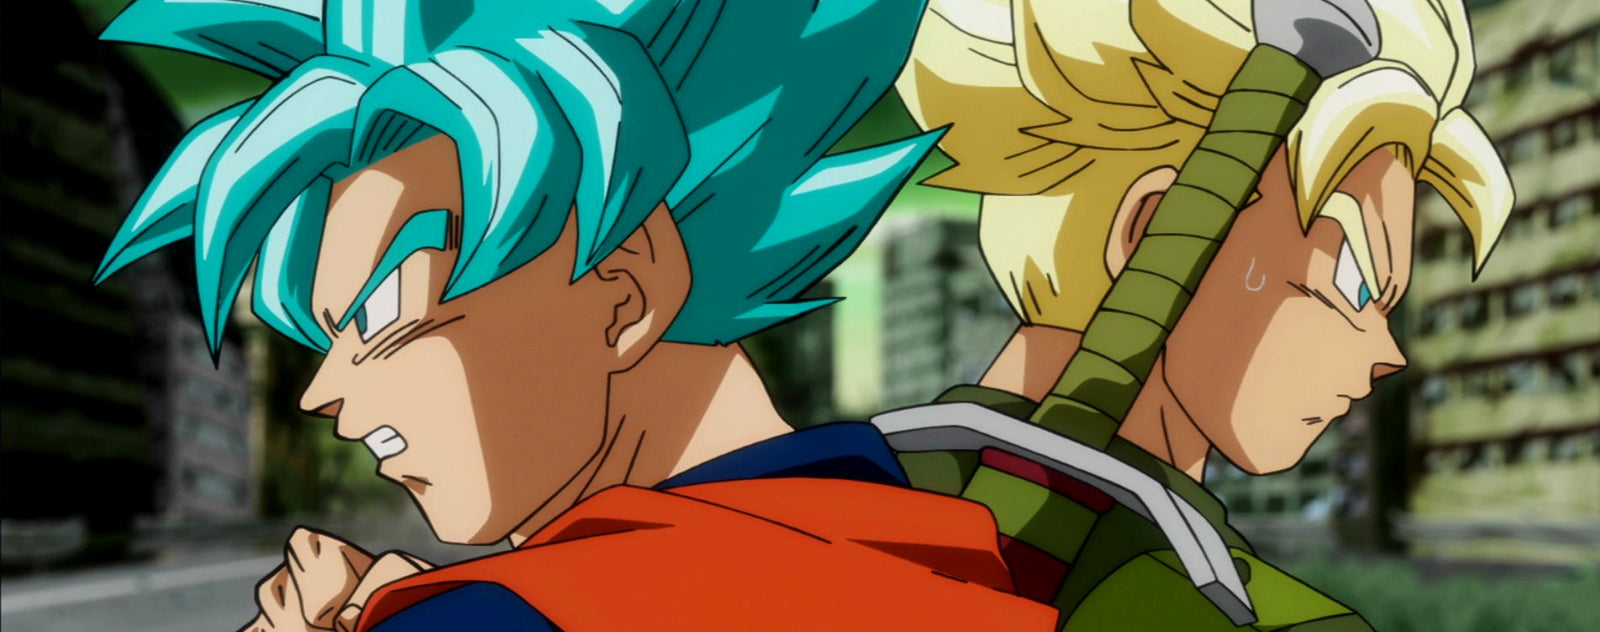 Goku vs Trunks Futur